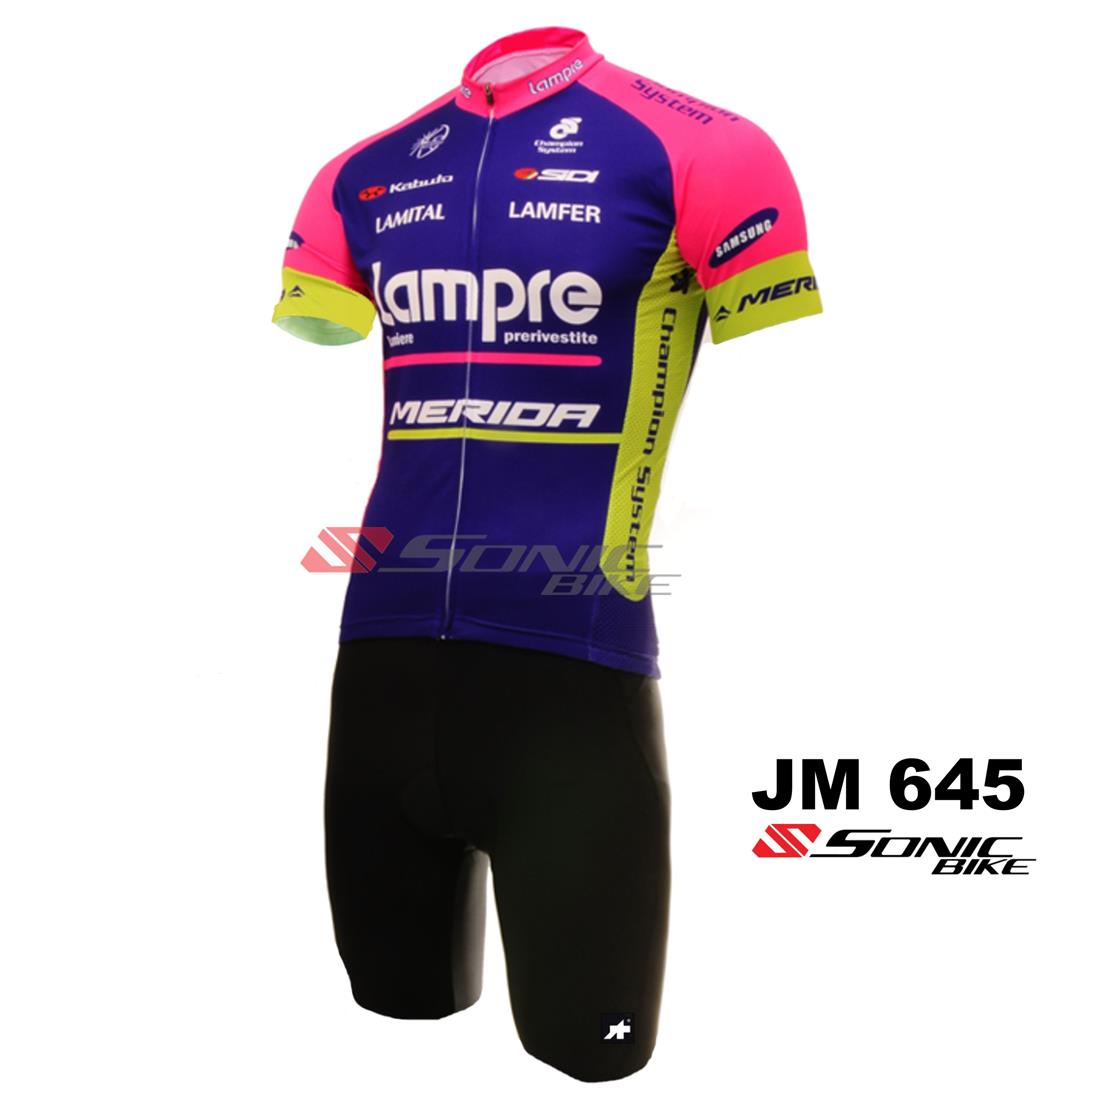 MERIDA LAMPRE CYCLING JERSEY- JM645